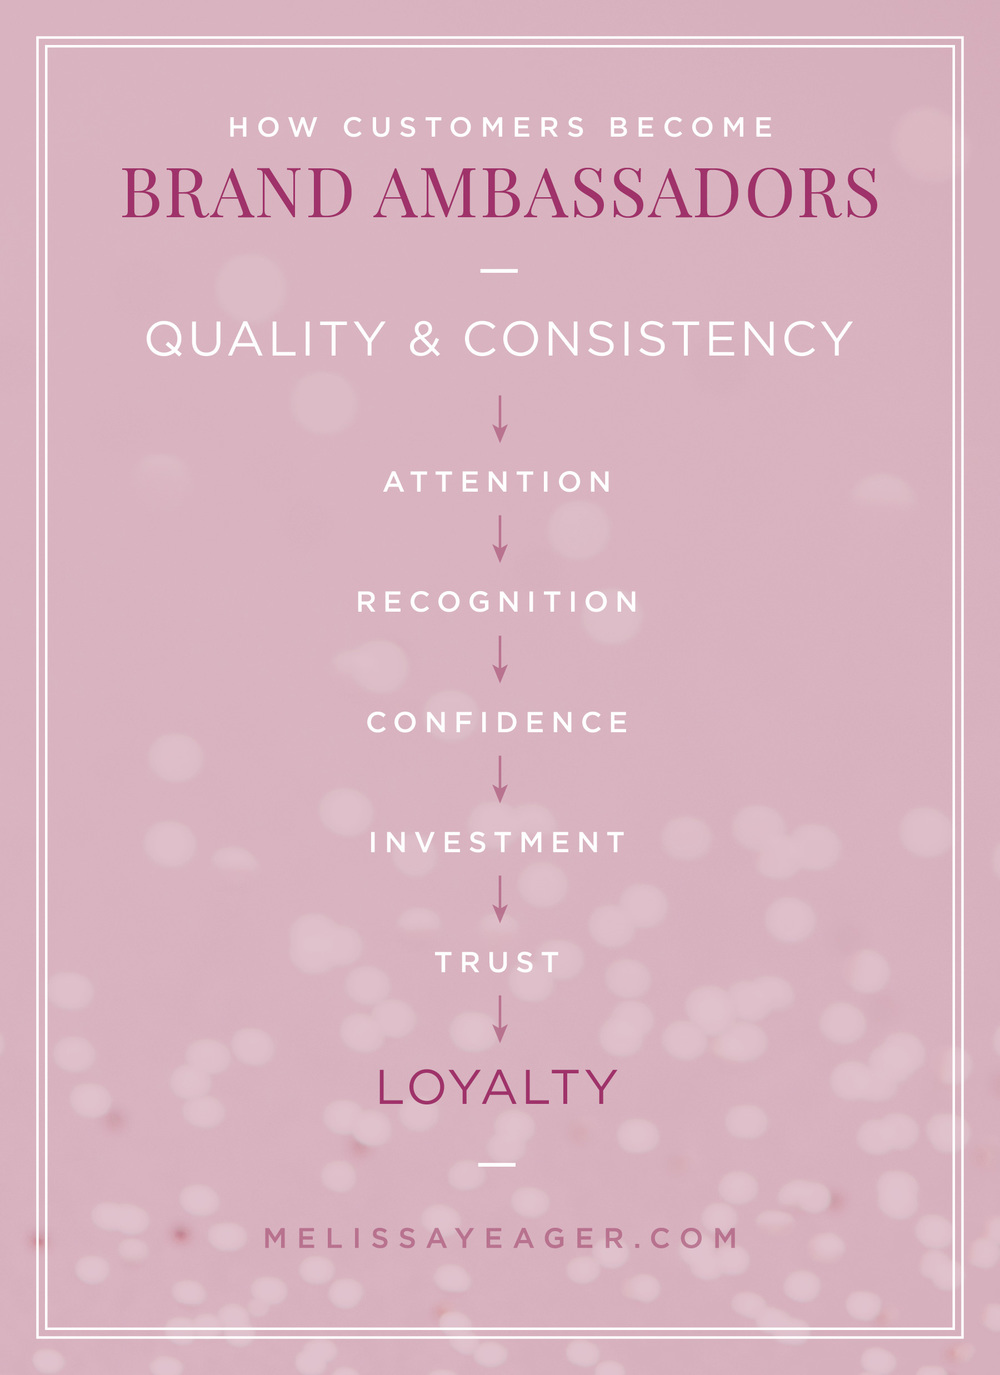 How Customers Become Loyal Brand Ambassadors